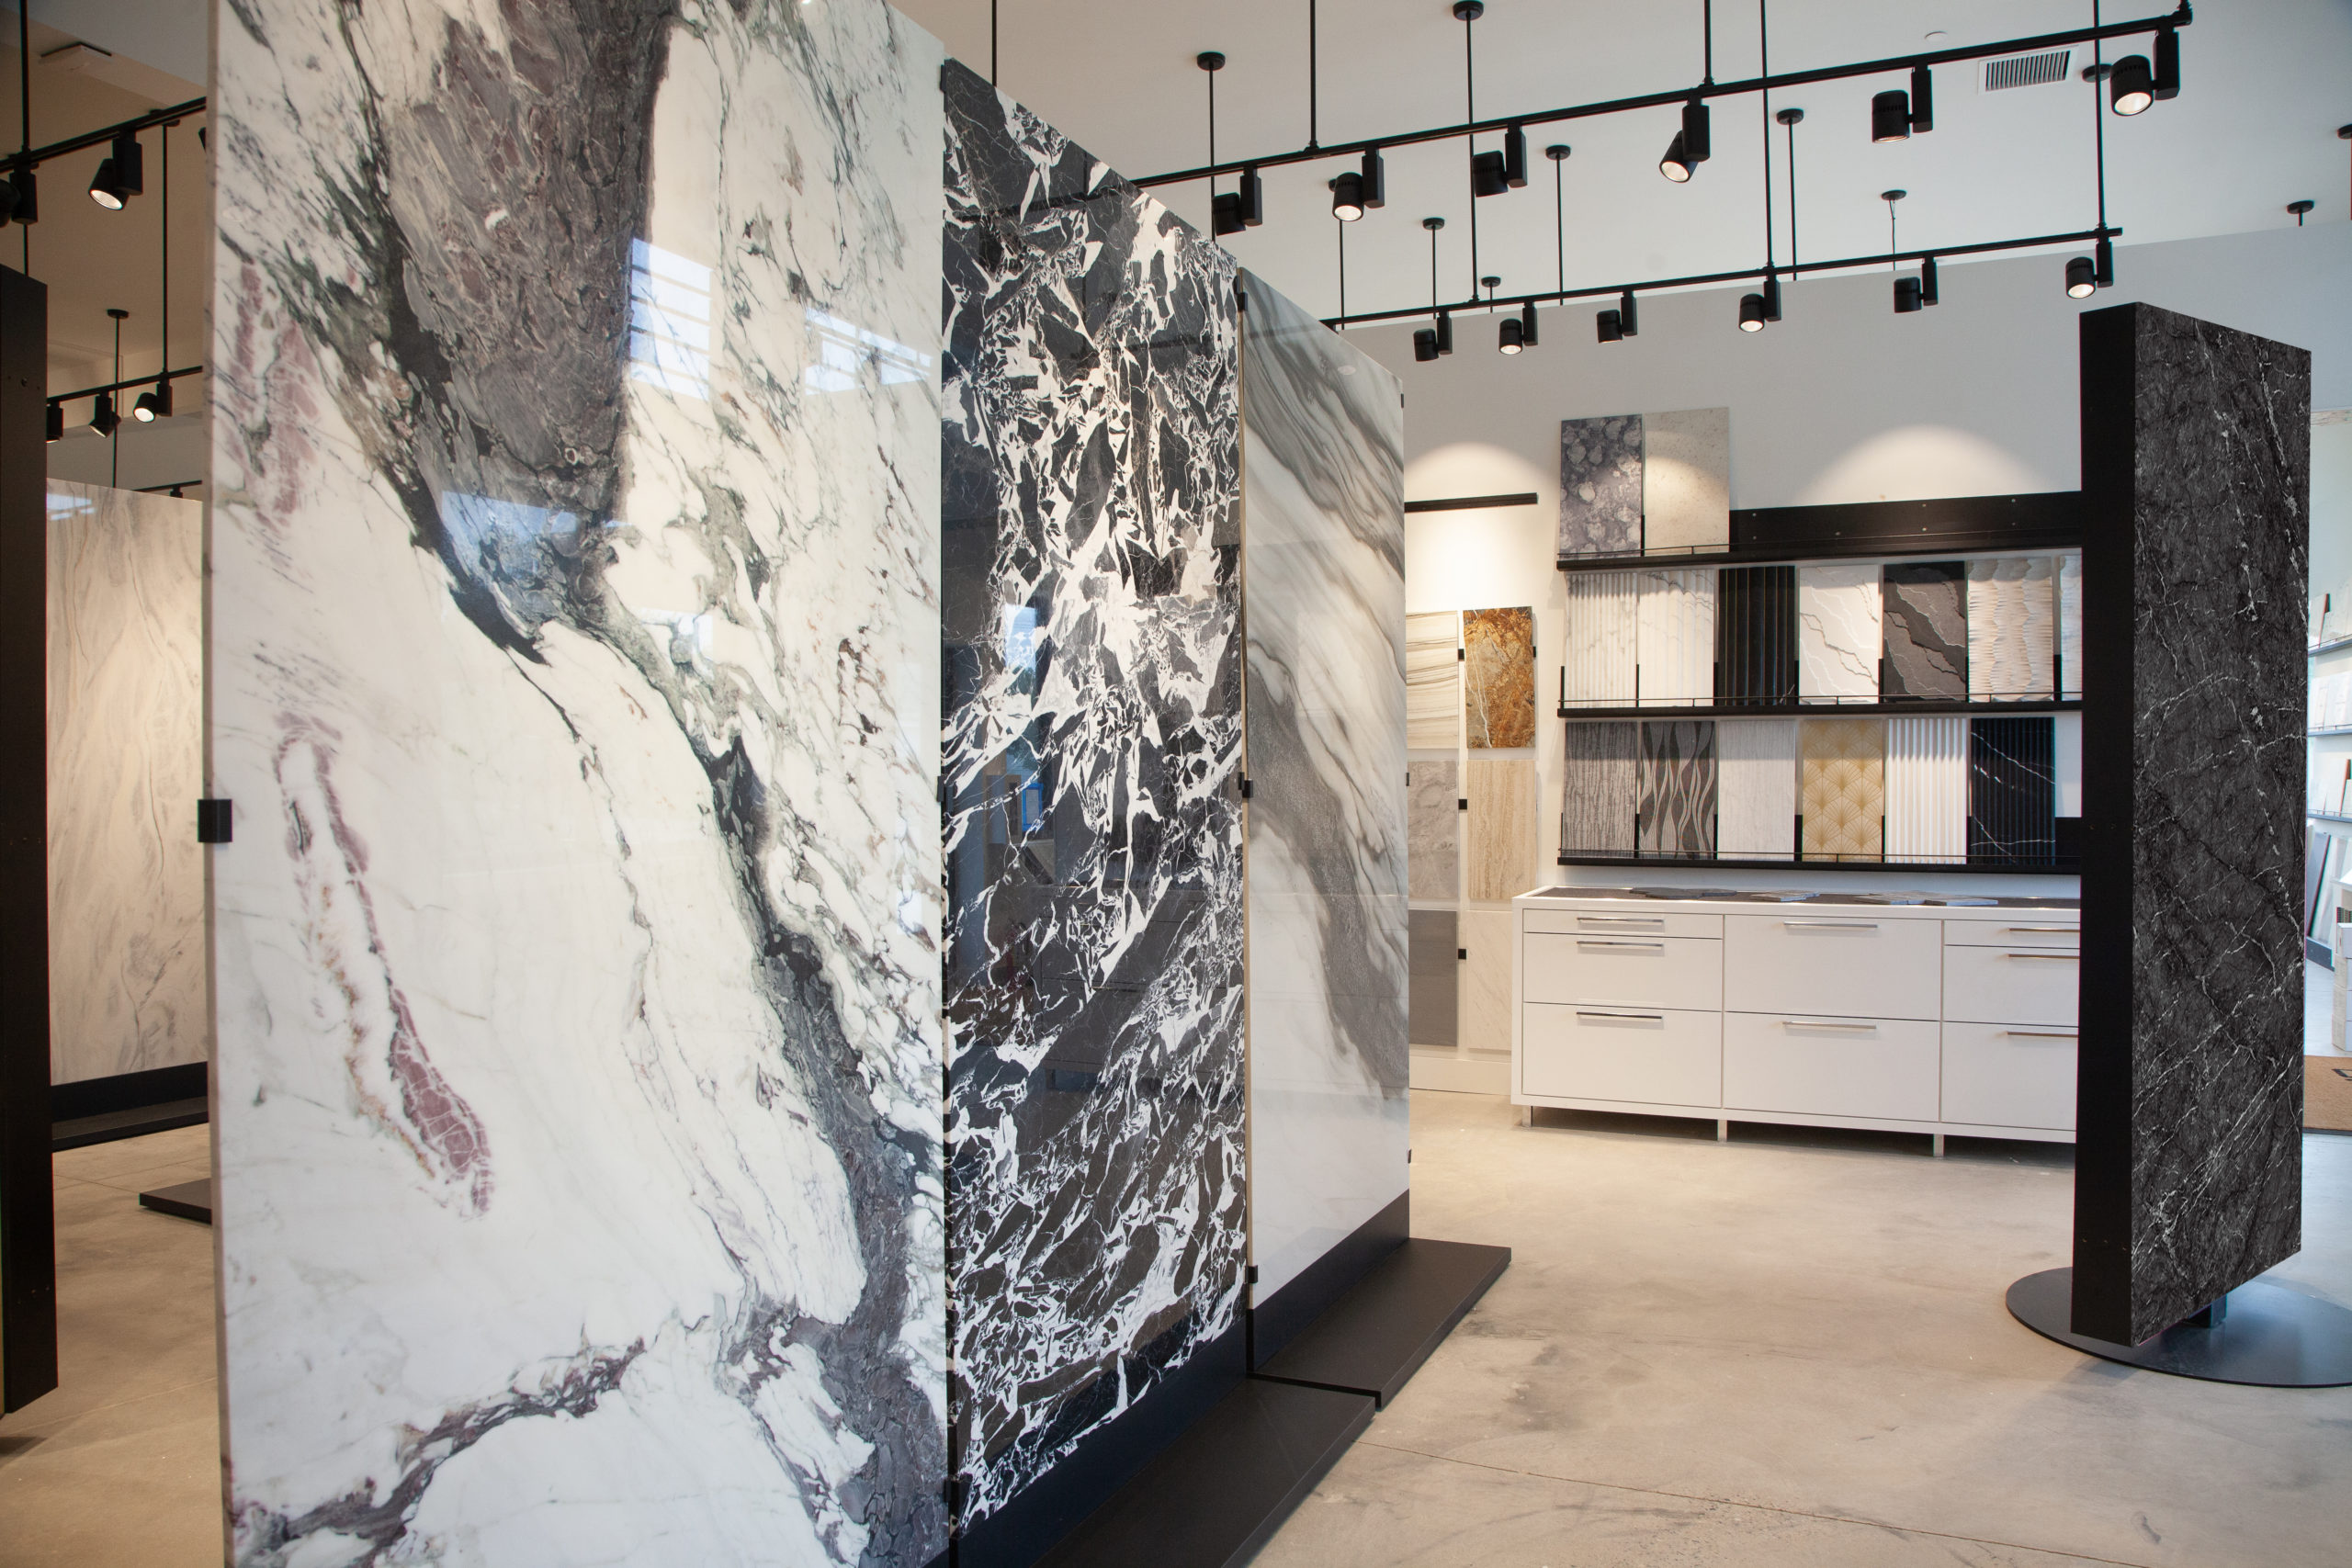 Large-scaled porcelain slabs give clients a better sense of how the product will look in their home.